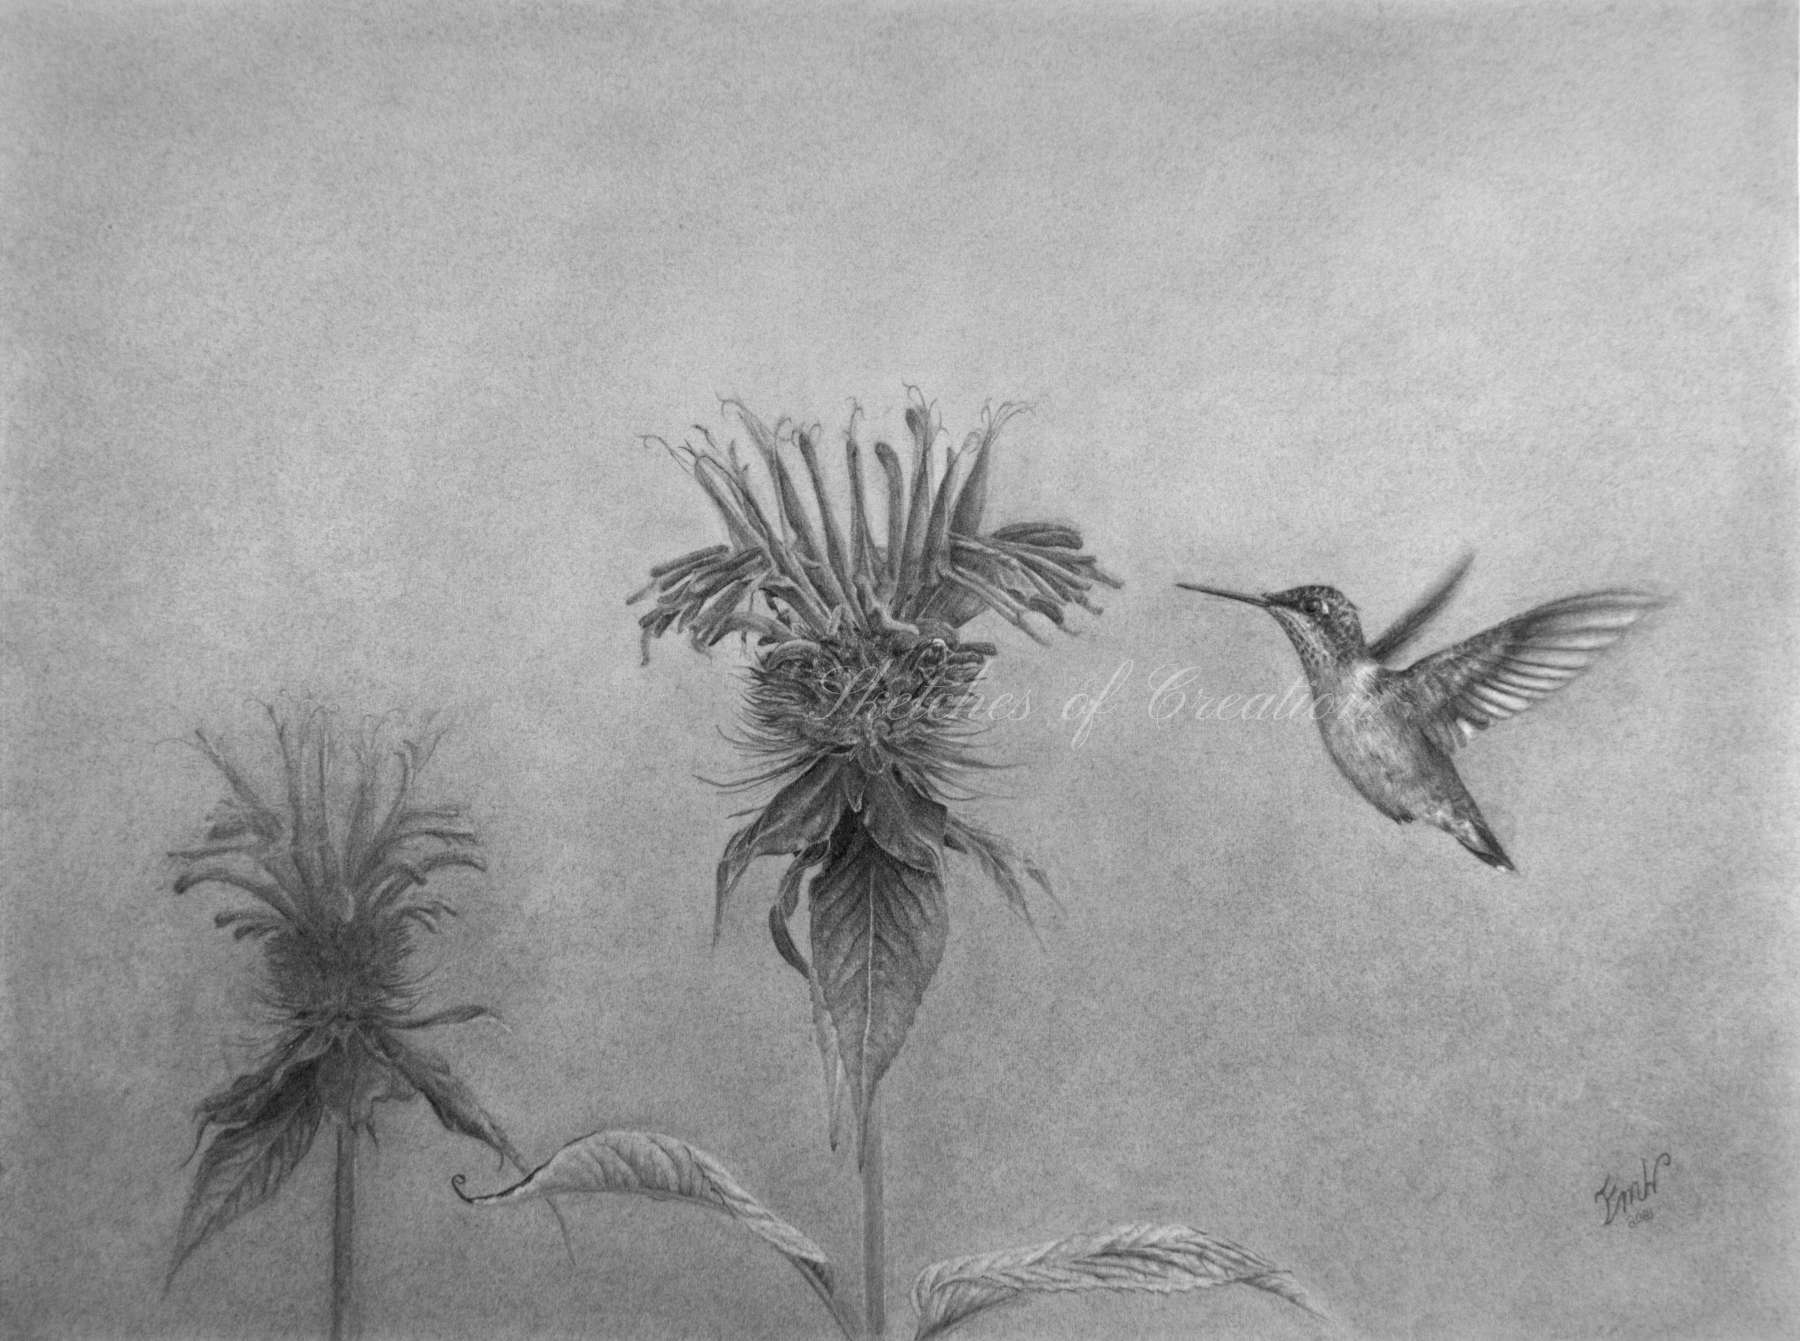 'Hummingbird with Beebalm' a drawing of a hummingbird flying next to a beebalm flower. Completed August 2021